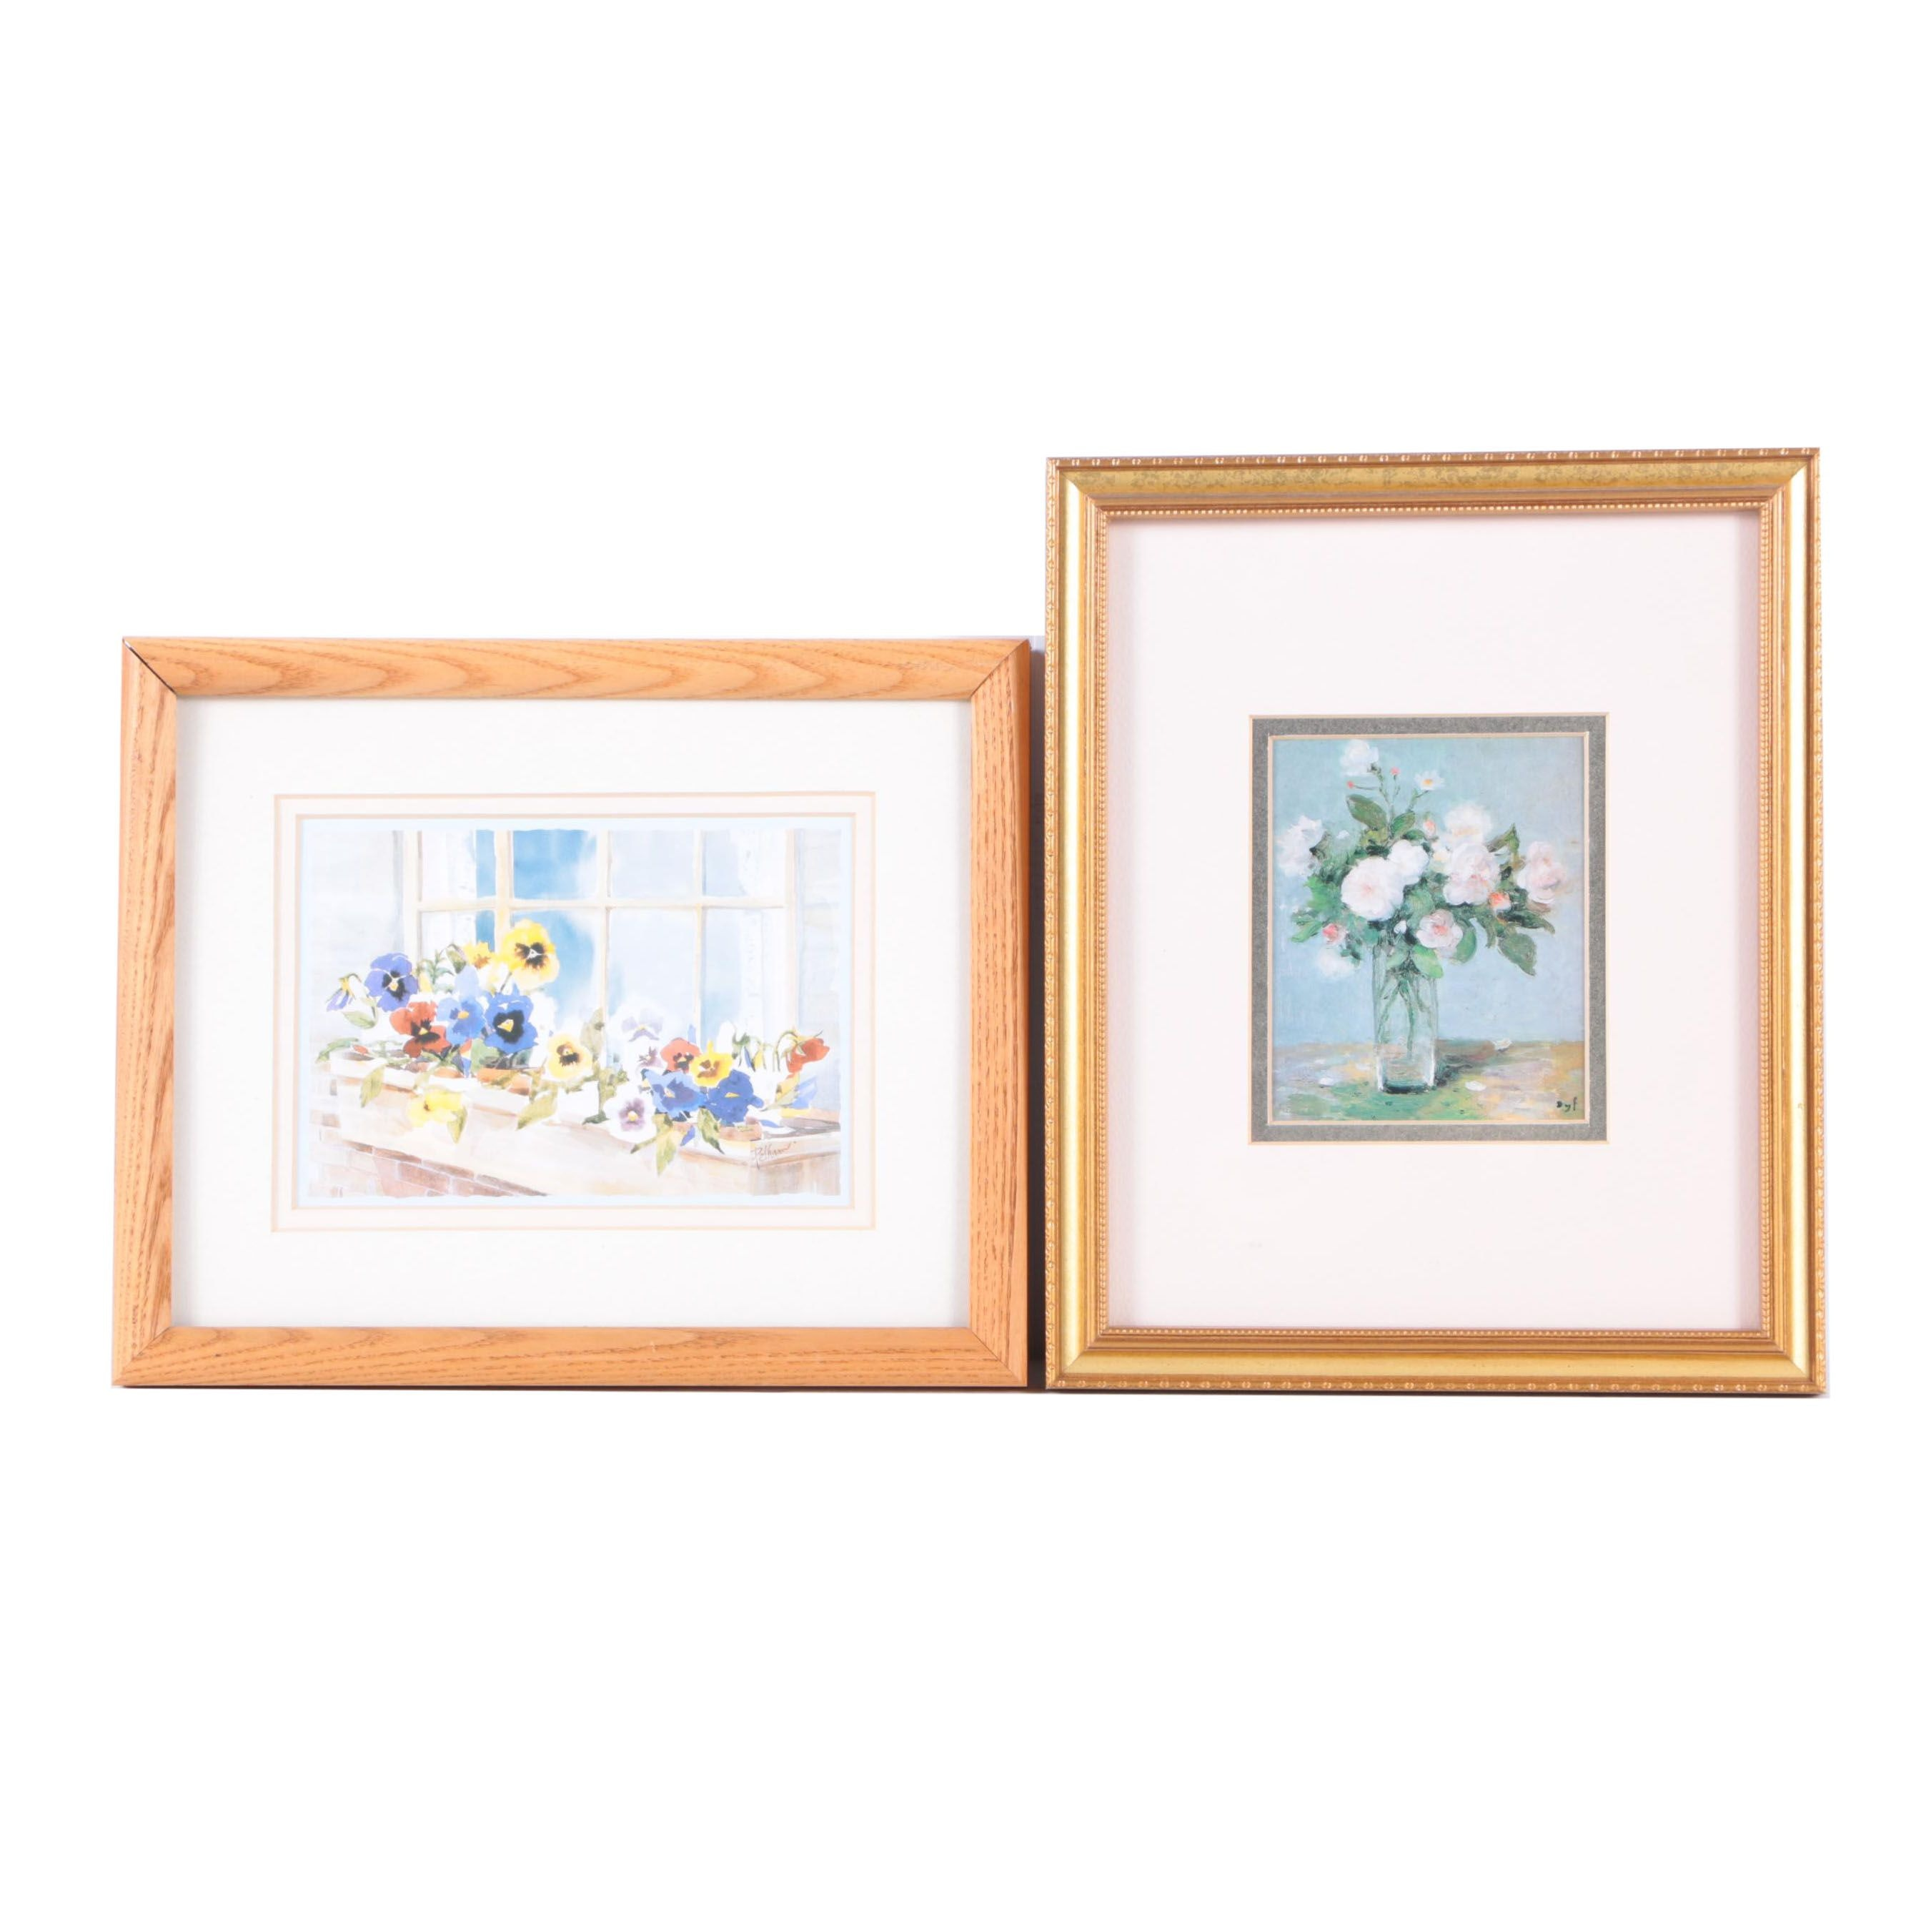 Offset Lithographs on Paper of Flowers Featuring Marcel Dyf